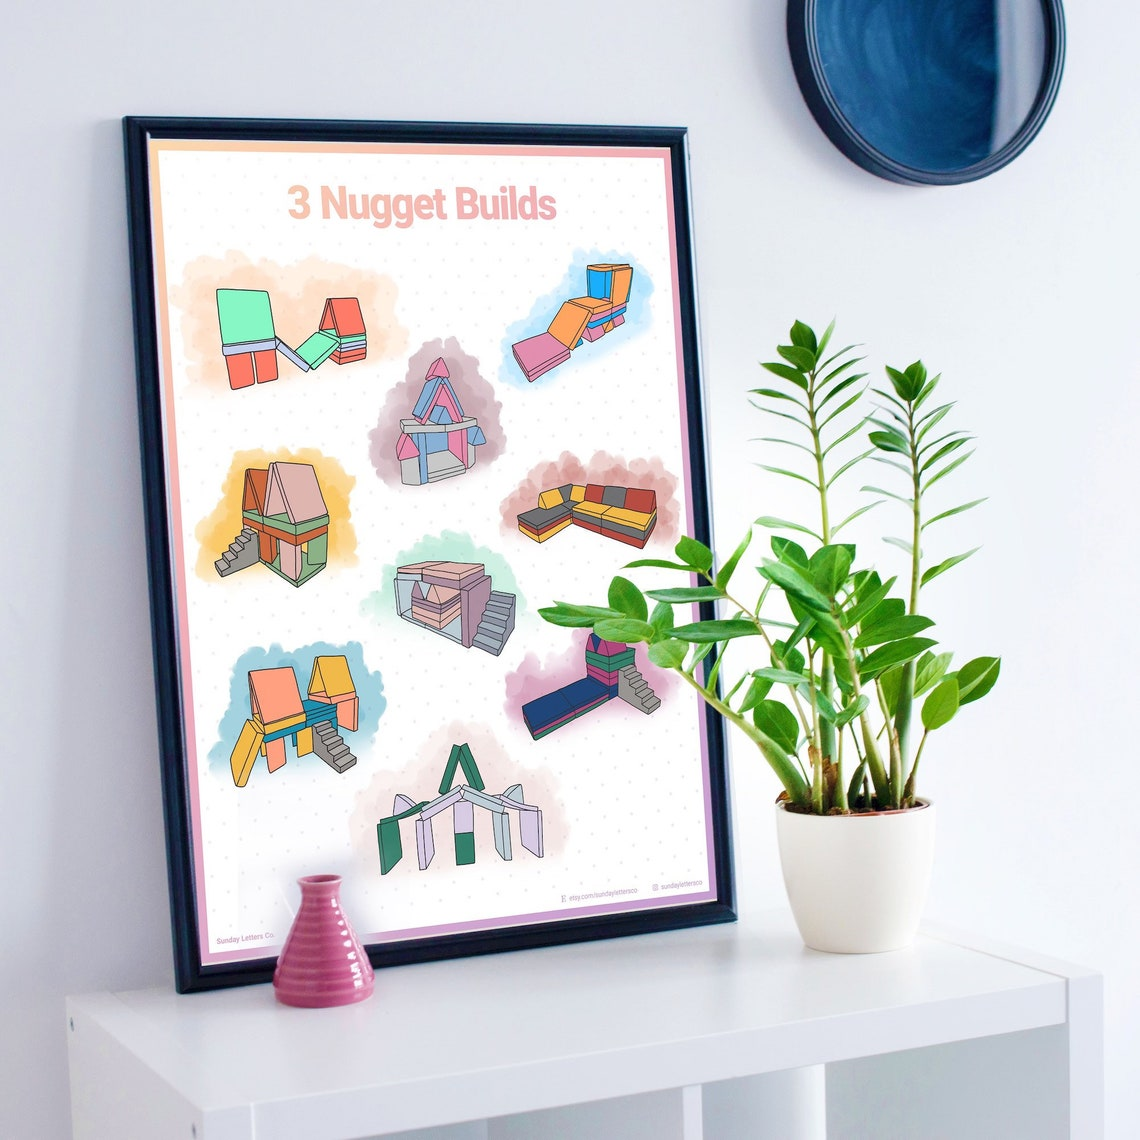 3 Nugget Builds Nugget Couch Ideas Cartel Minimalista   Etsy